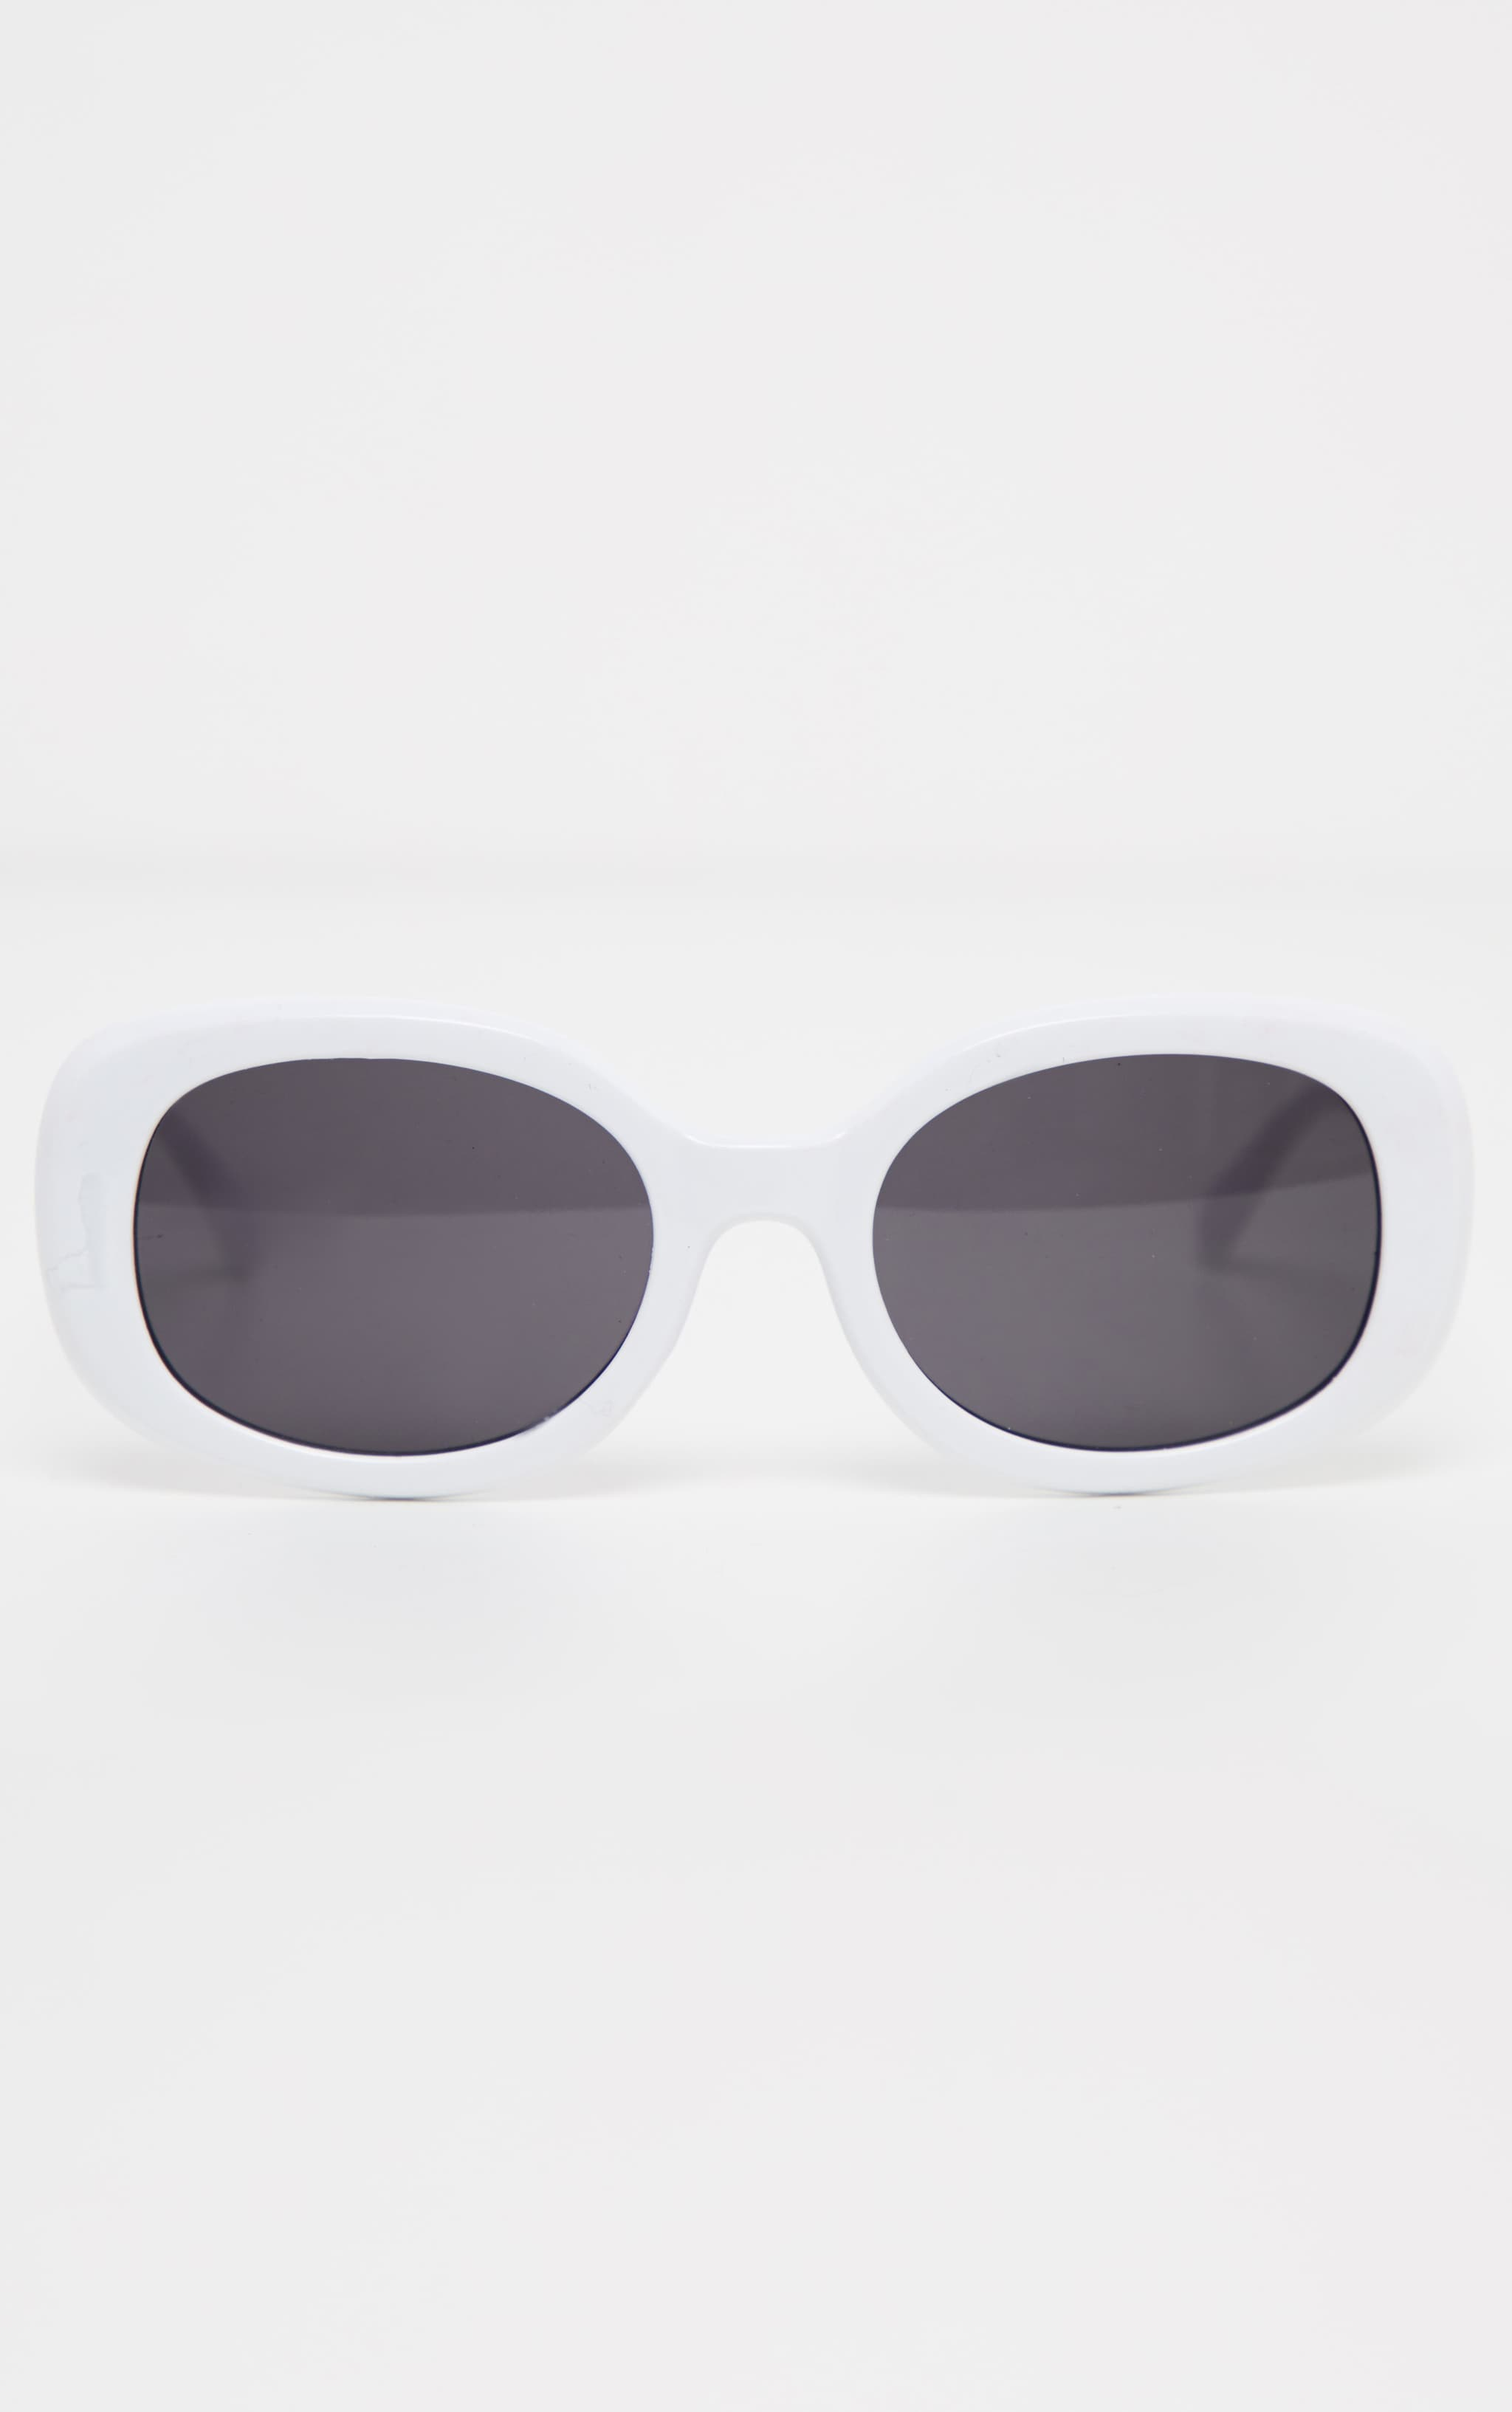 White Oval Shape Retro Sunglasses 3